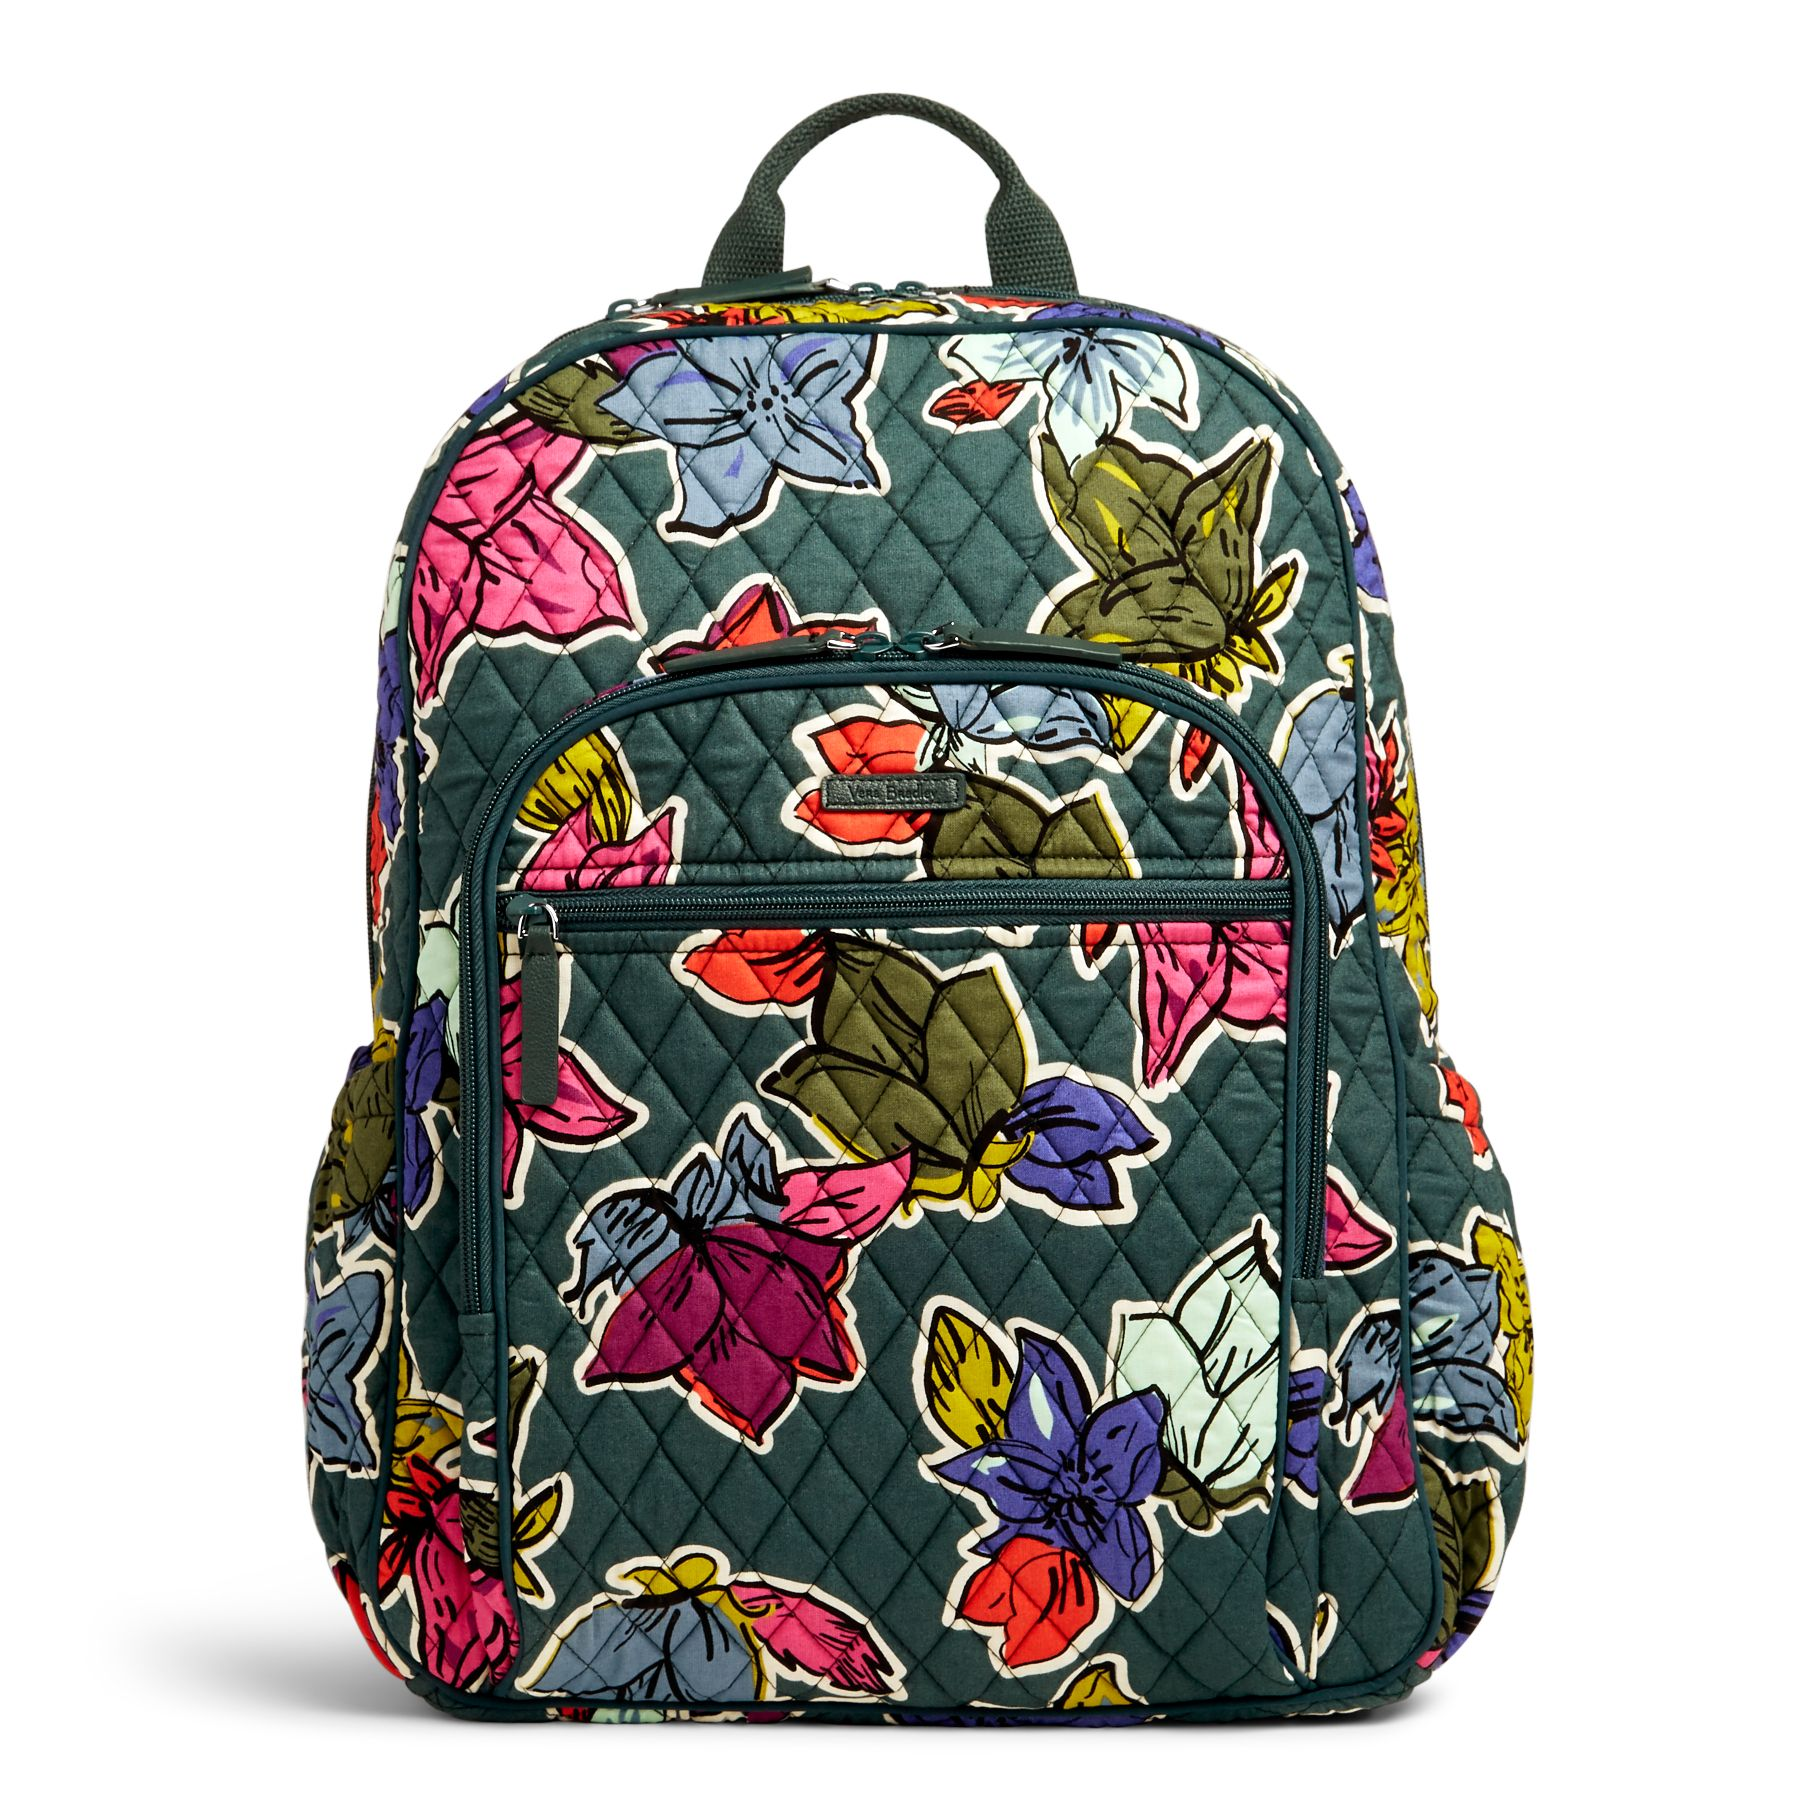 Vera Bradley レディース Backpack 送料無料 Espresso Campus Backpack 商品説明 Around campus or across the country make the journey more colorful with this comfortable backpack from Vera Bradley?